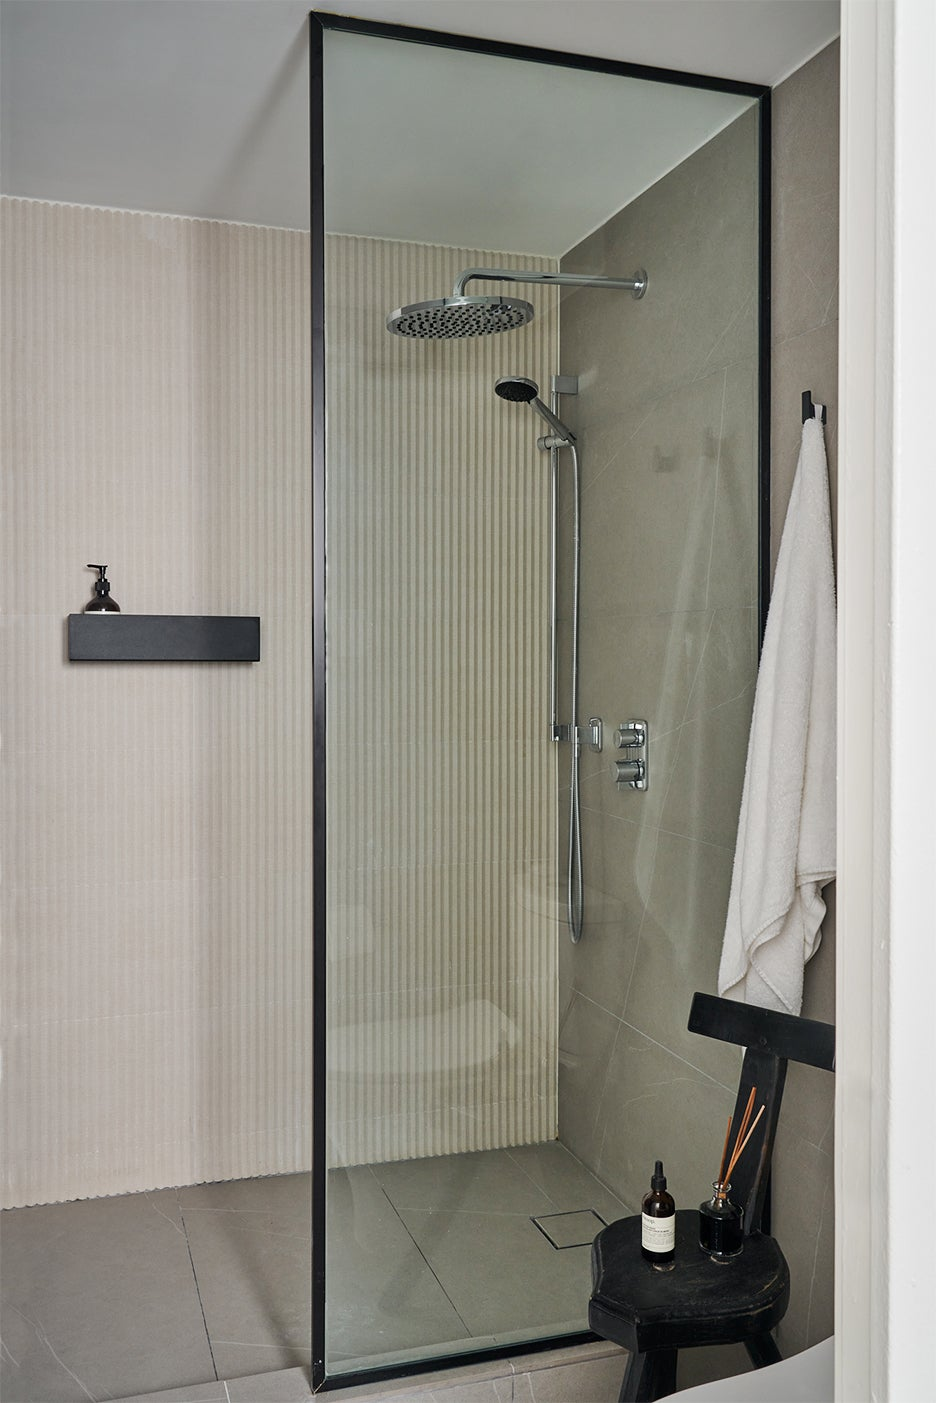 Walk-in shower with striped tile